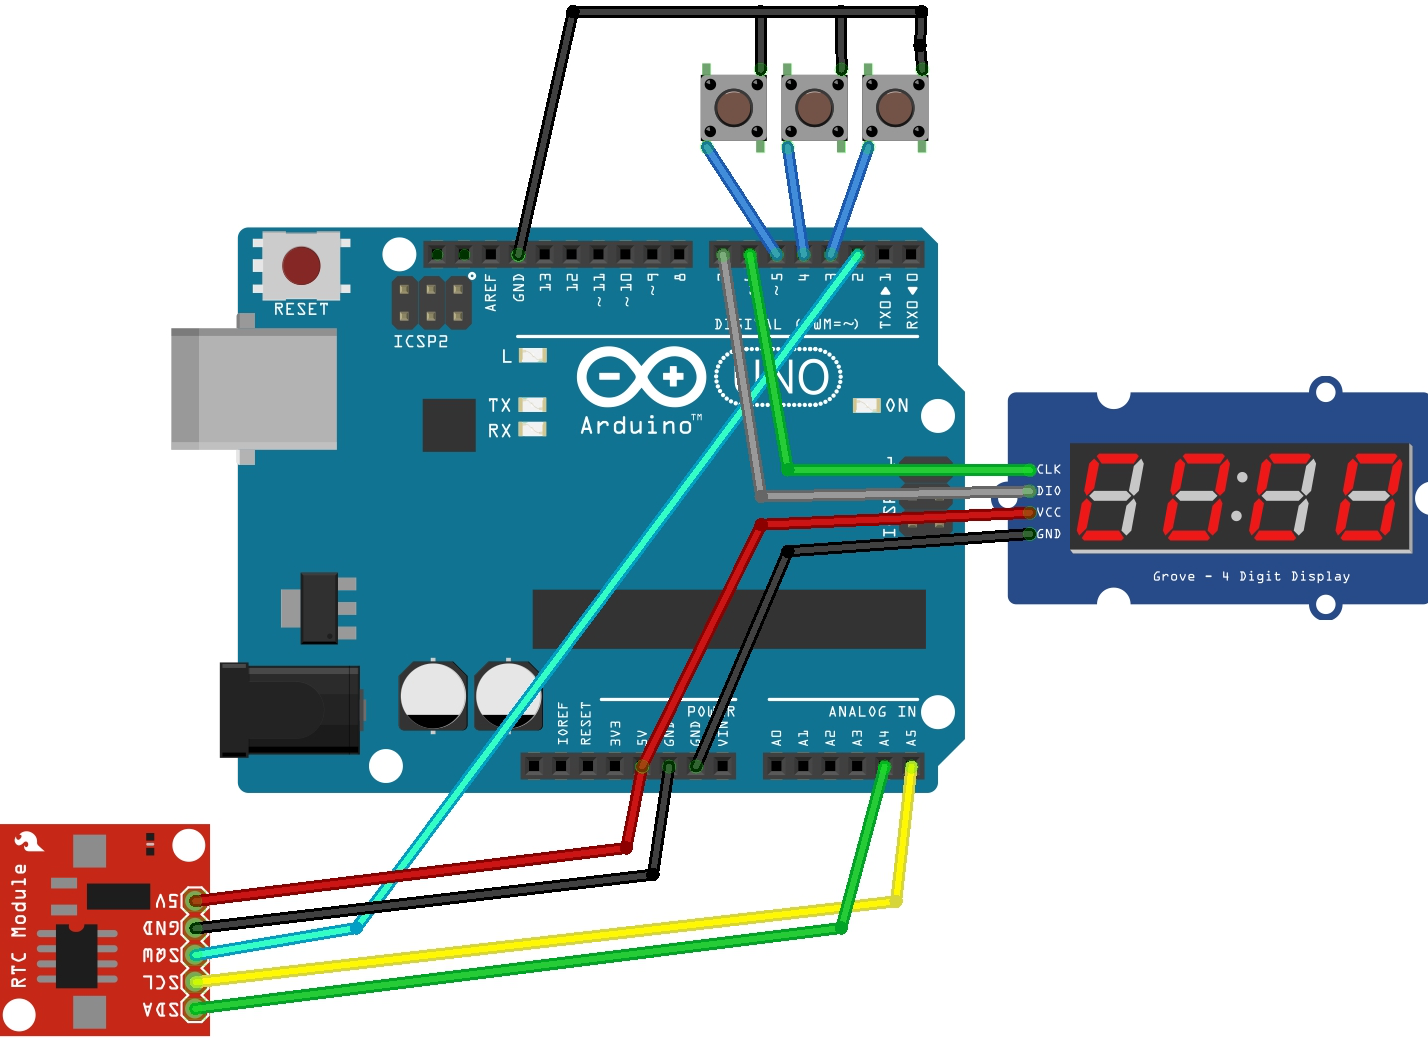 ds3231 real time clock rtc is a low power full binary coded decimal bcd clock calendar the clock can operate in either the 24 hour or 12 hour format  [ 1428 x 1045 Pixel ]